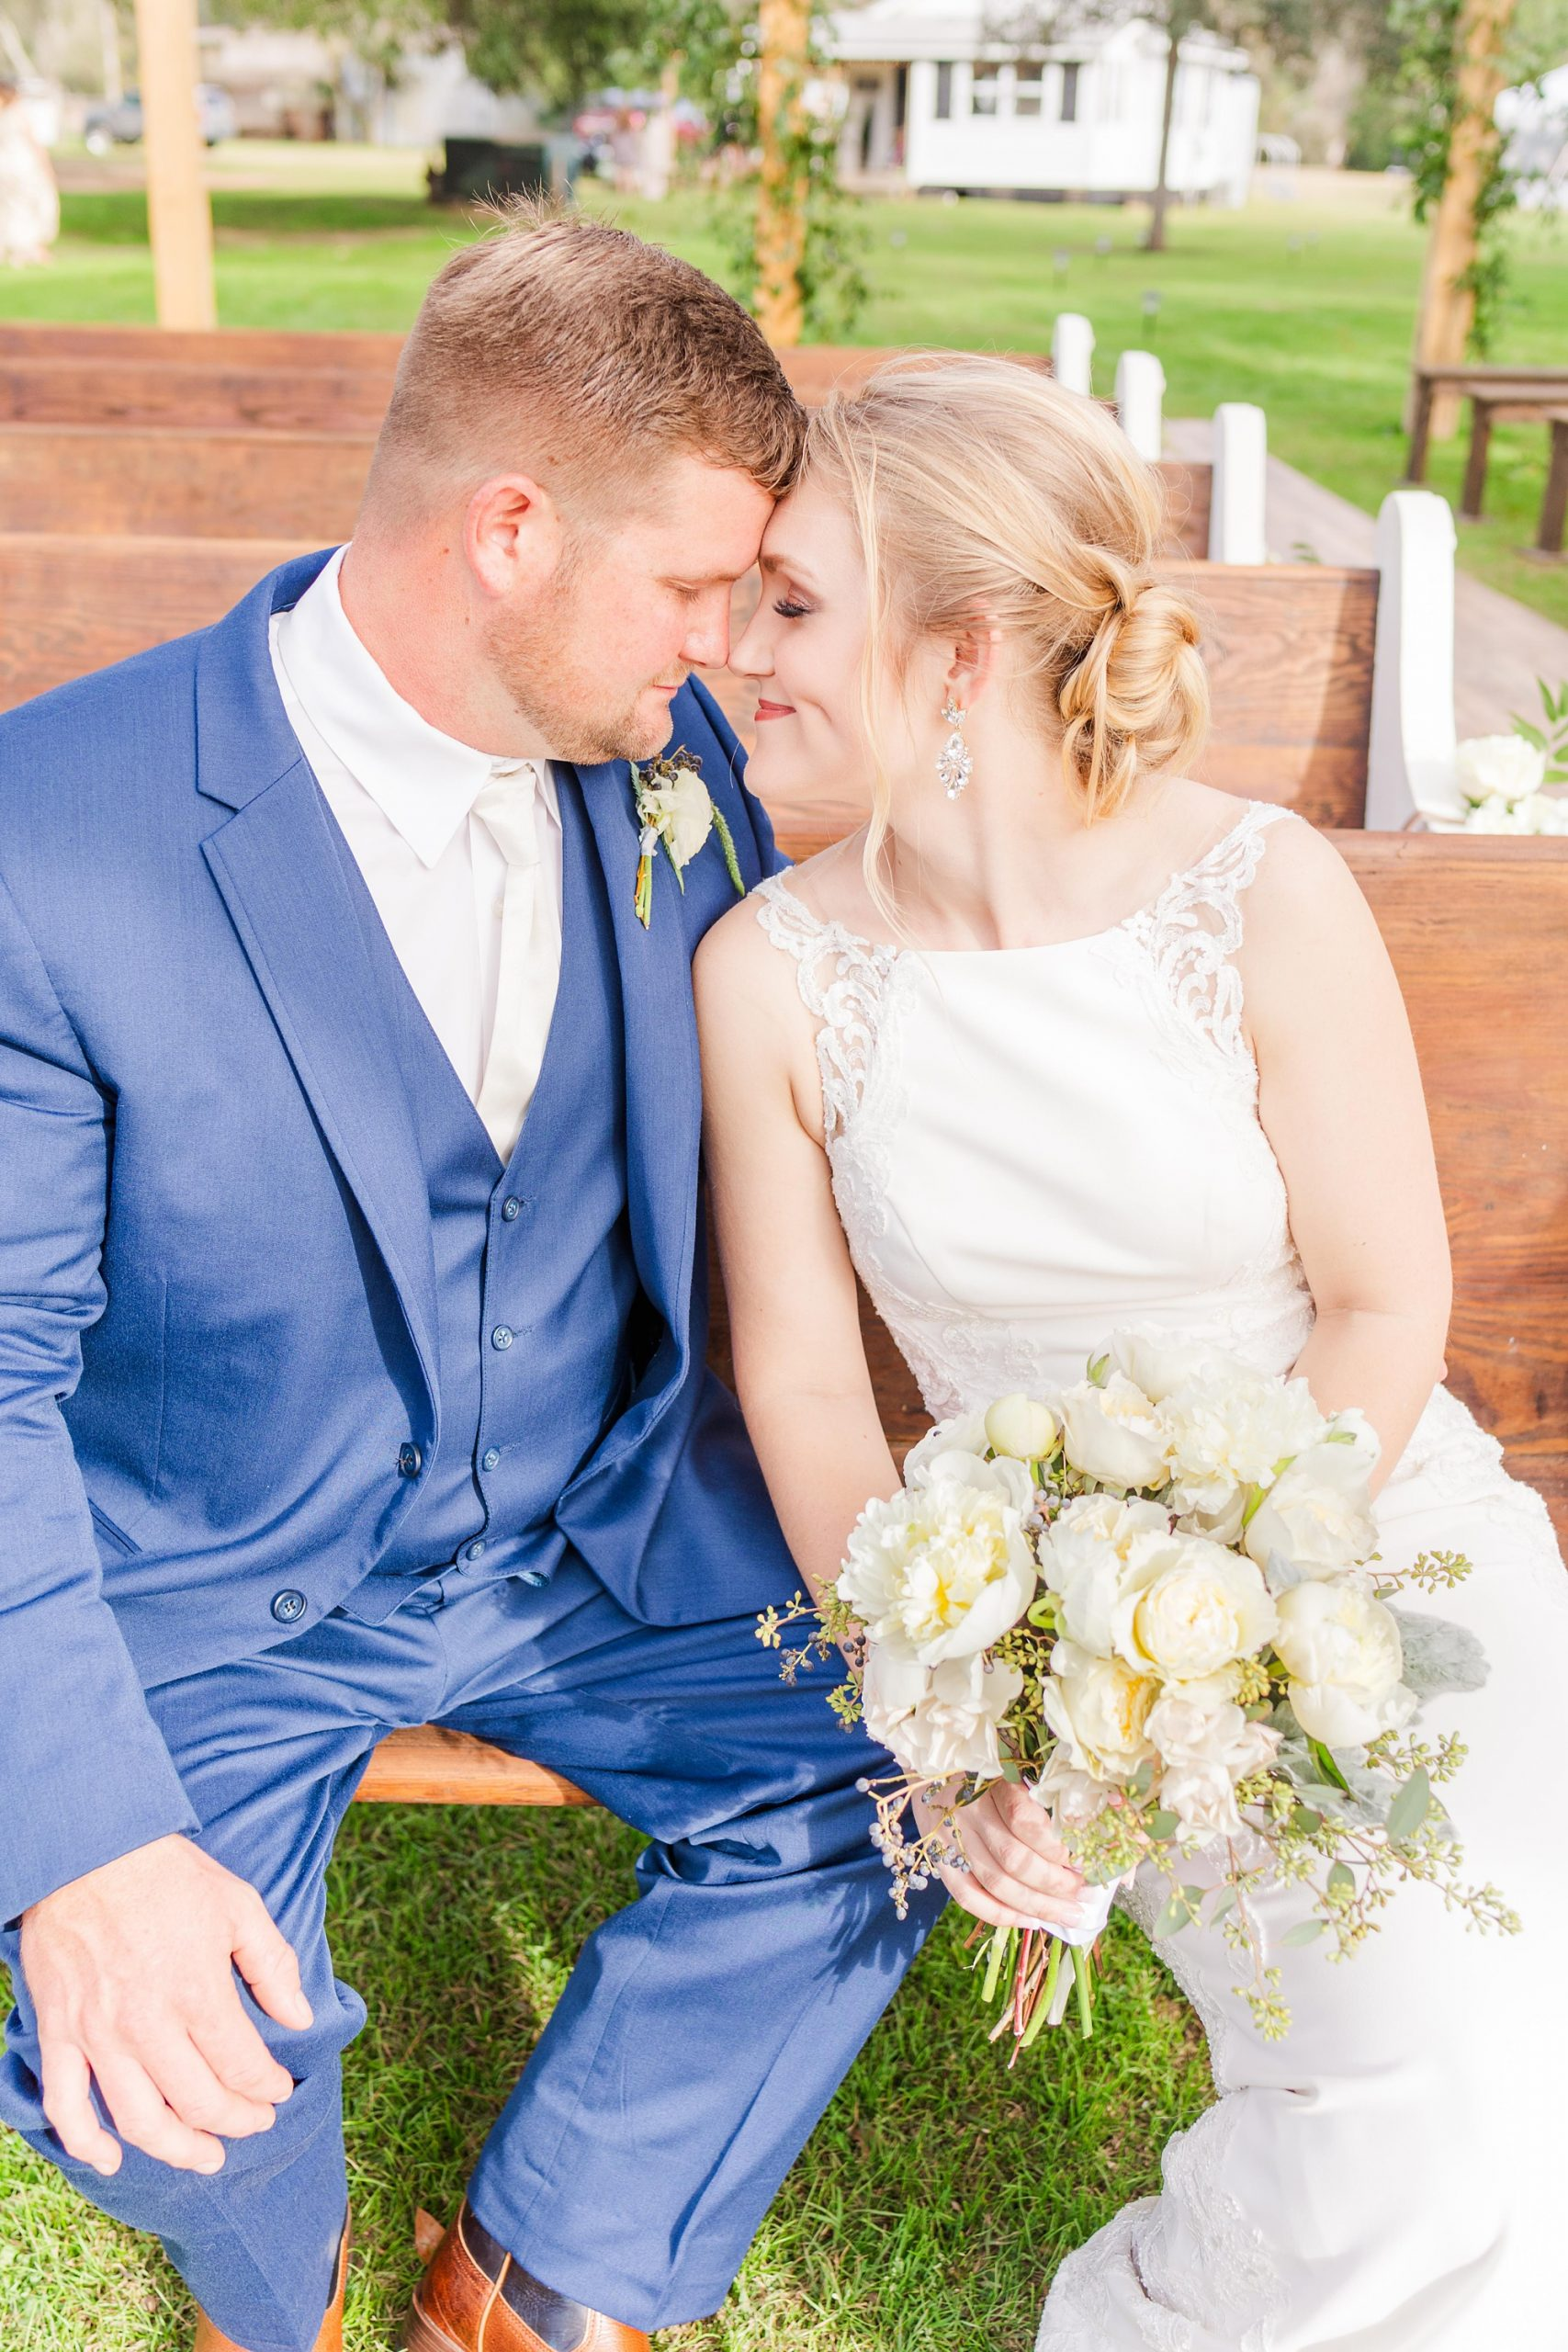 New Year's Eve wedding portraits on wooden pews